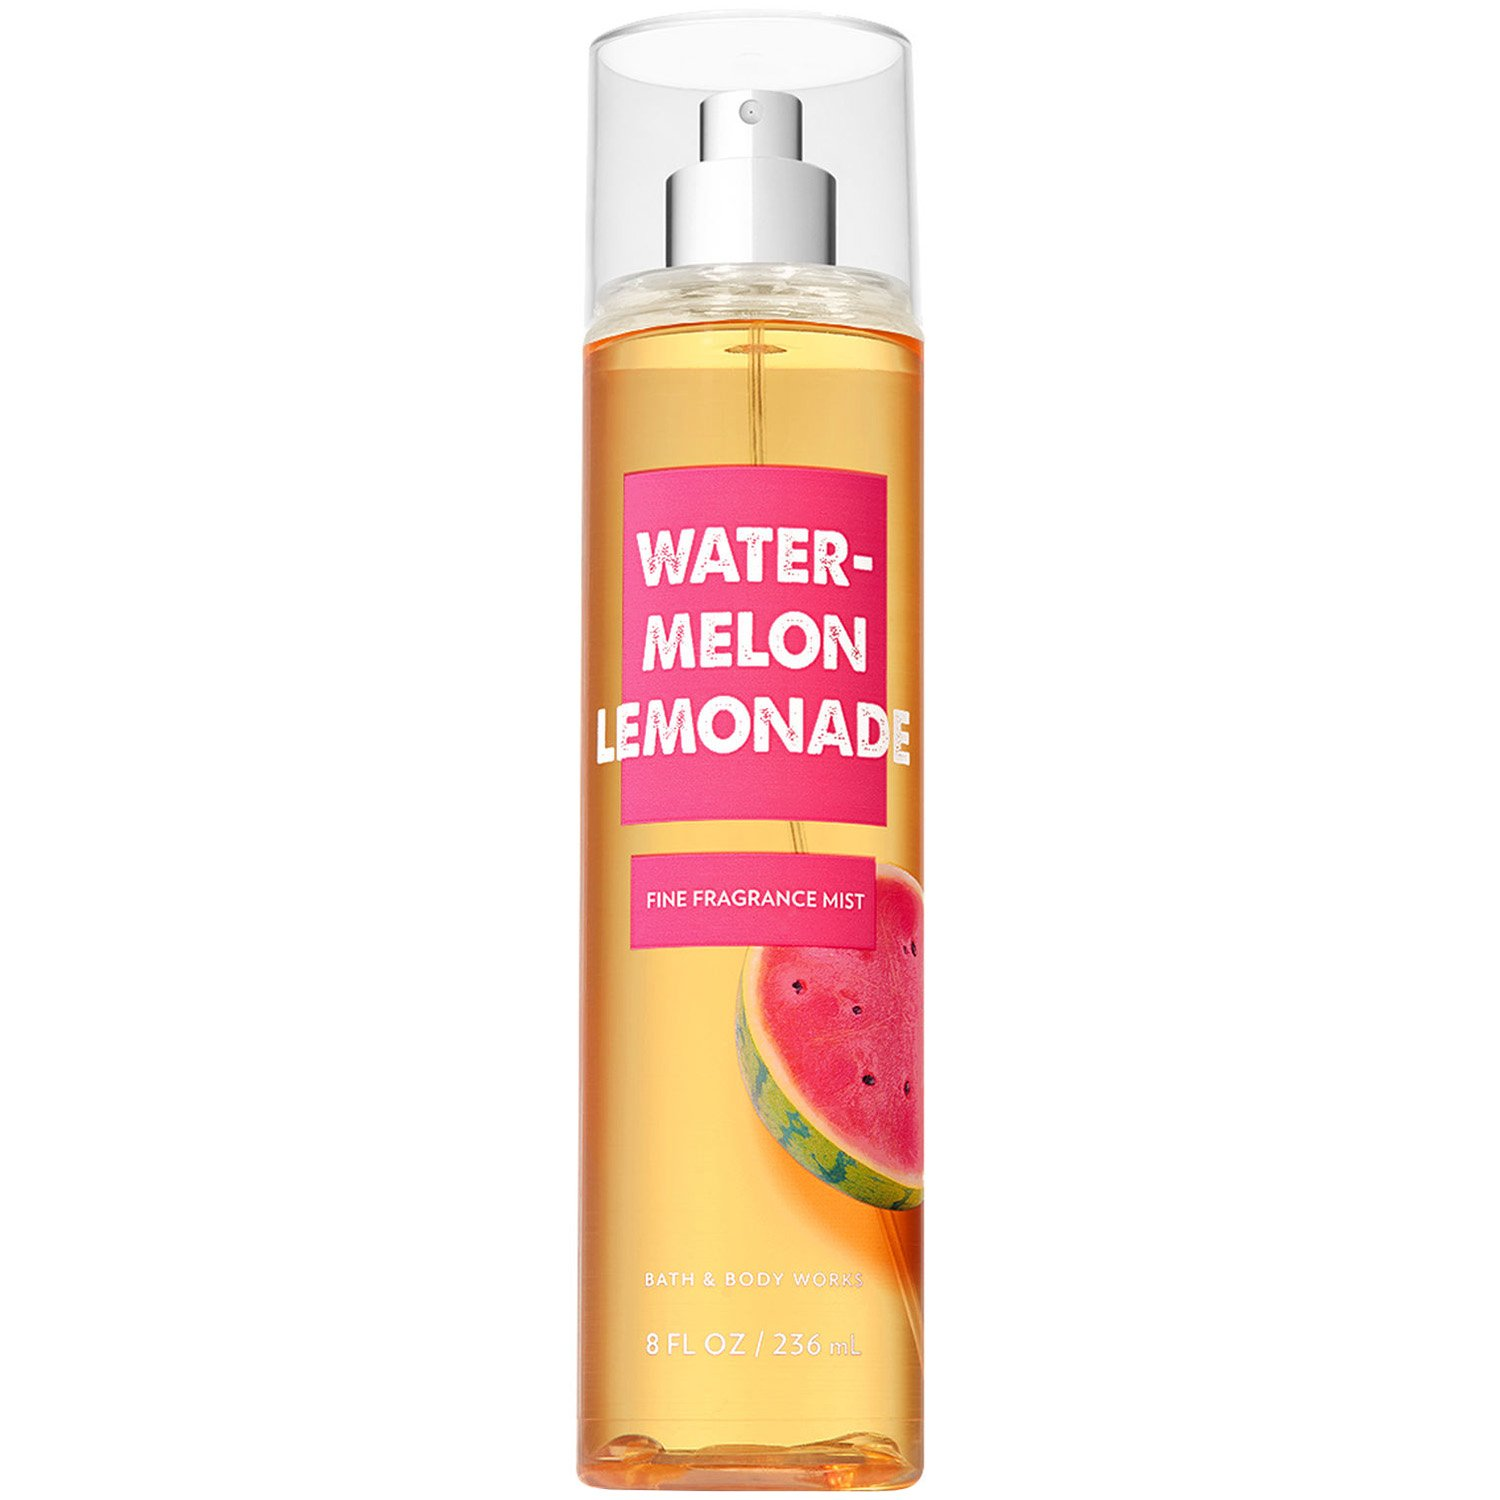 Bath and Body Works Watermelon Lemonade Fine Fragrance Mist 8 Fluid Ounce (2018 Edition)